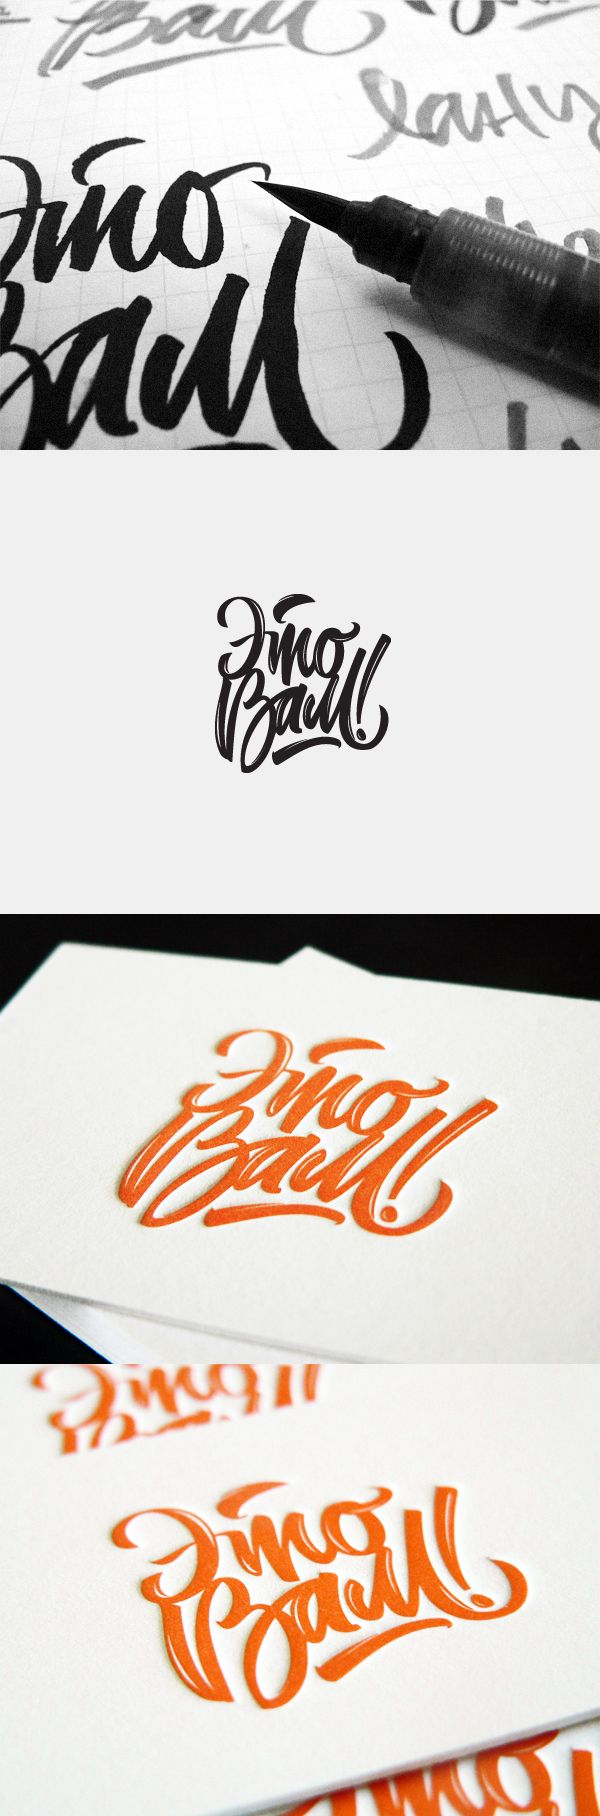 "Another great logotype from Sergey Shapiro -Russian words ""Это Вам!"""